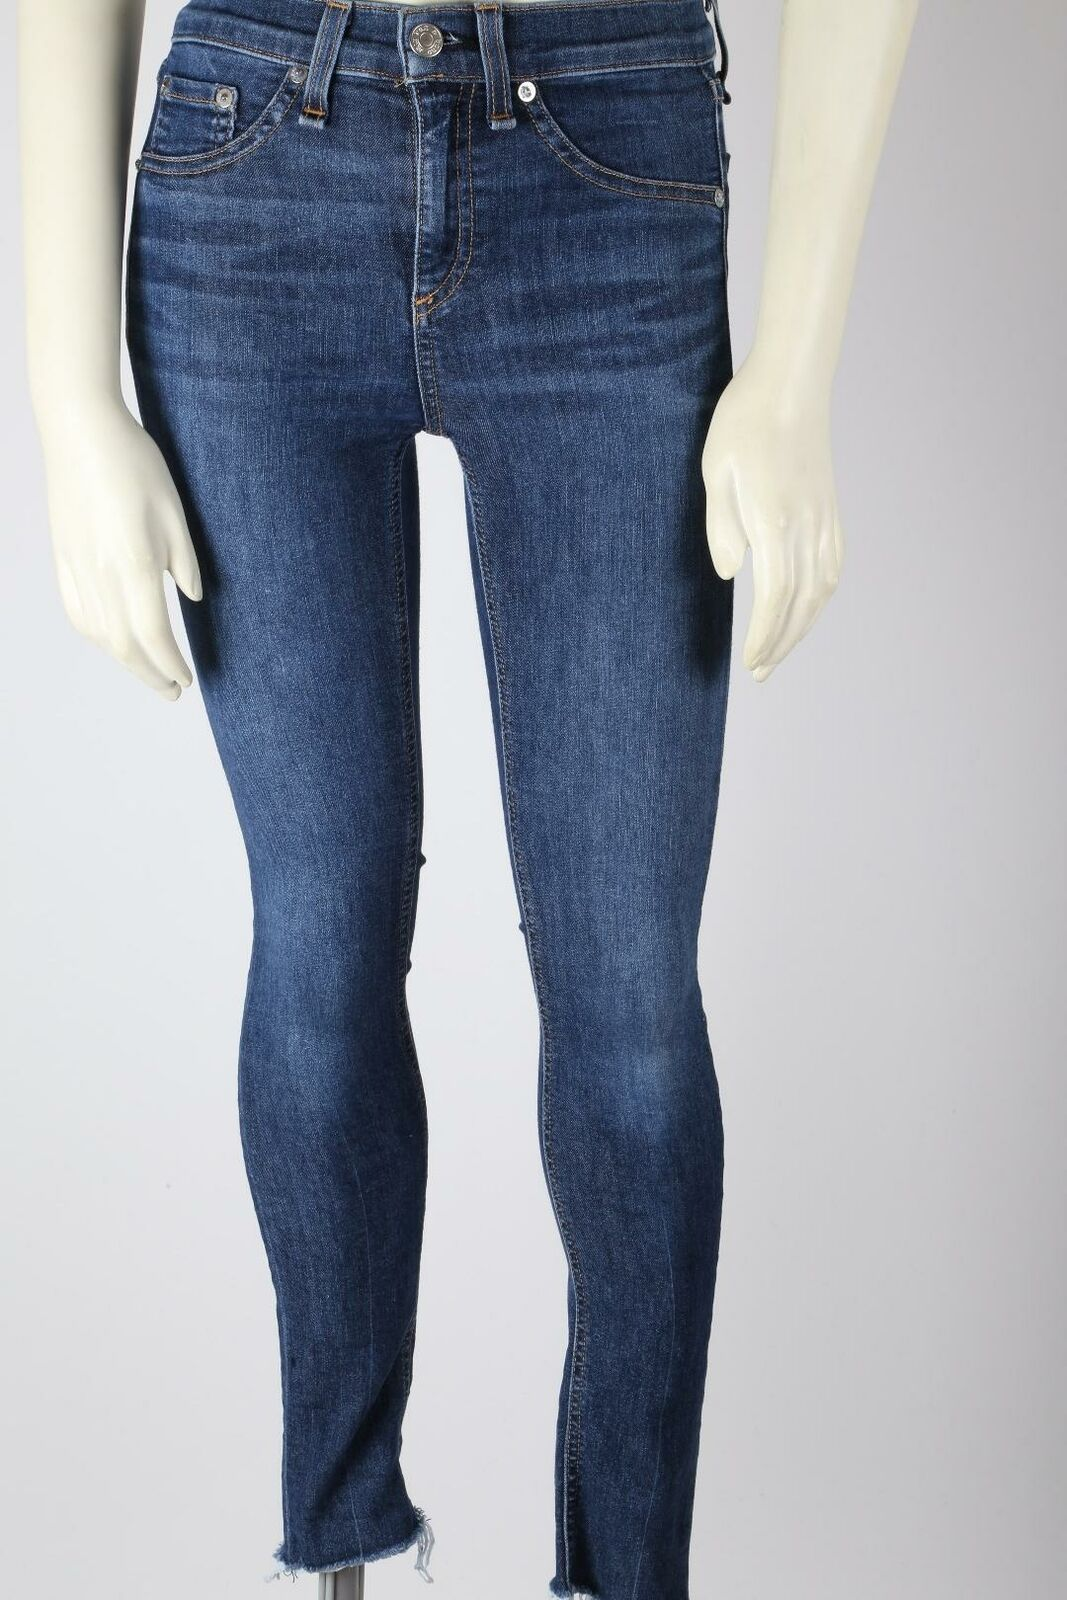 RAG & BONE Birch Skinny Denim Jeans Size 24